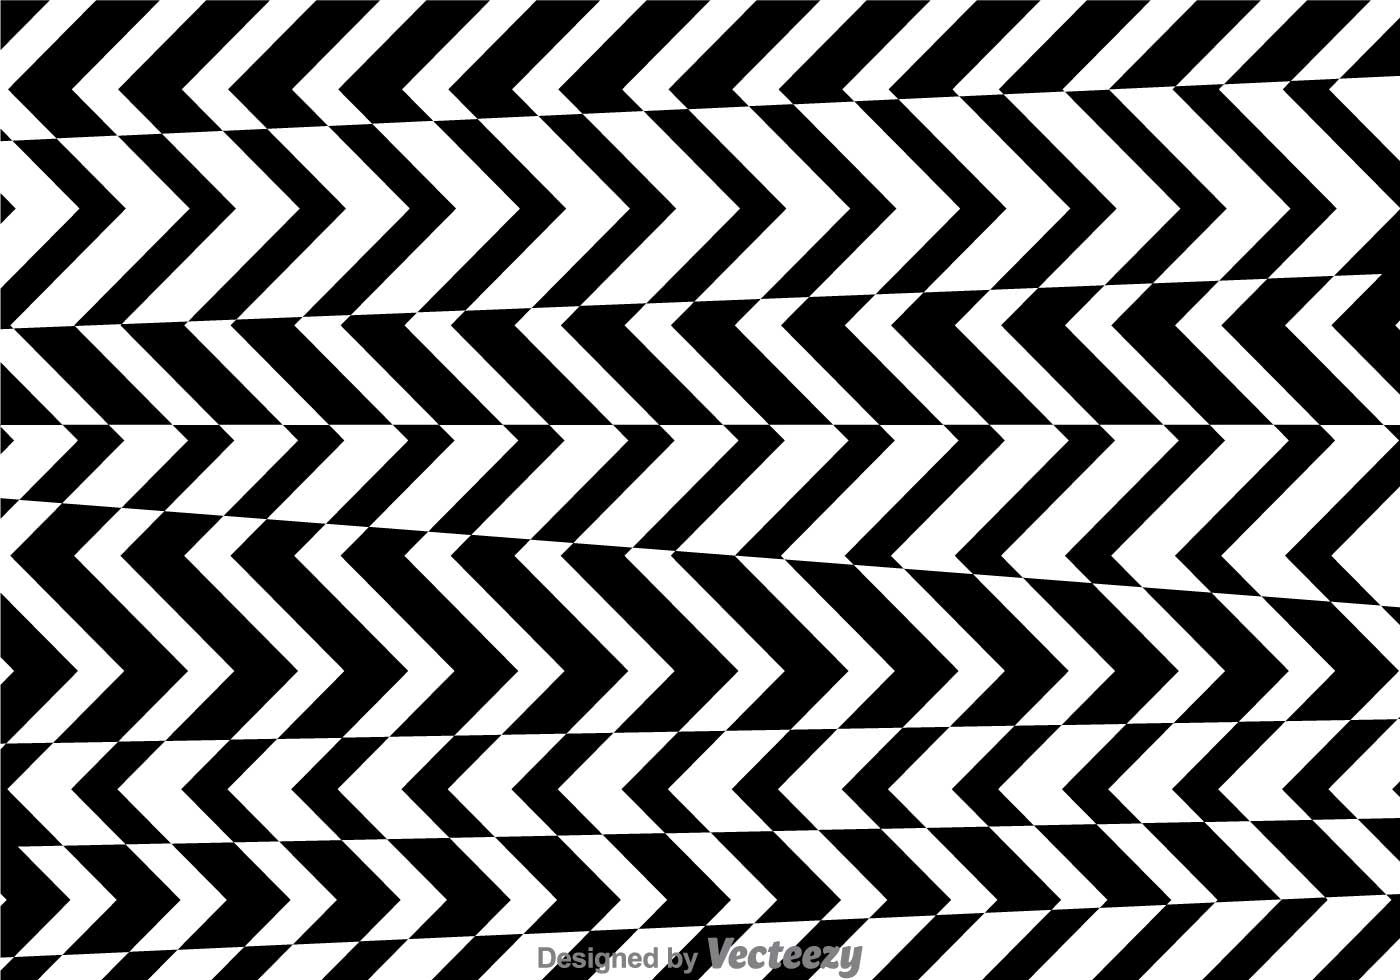 Stripe black and white pattern download free vector art stock graphics images